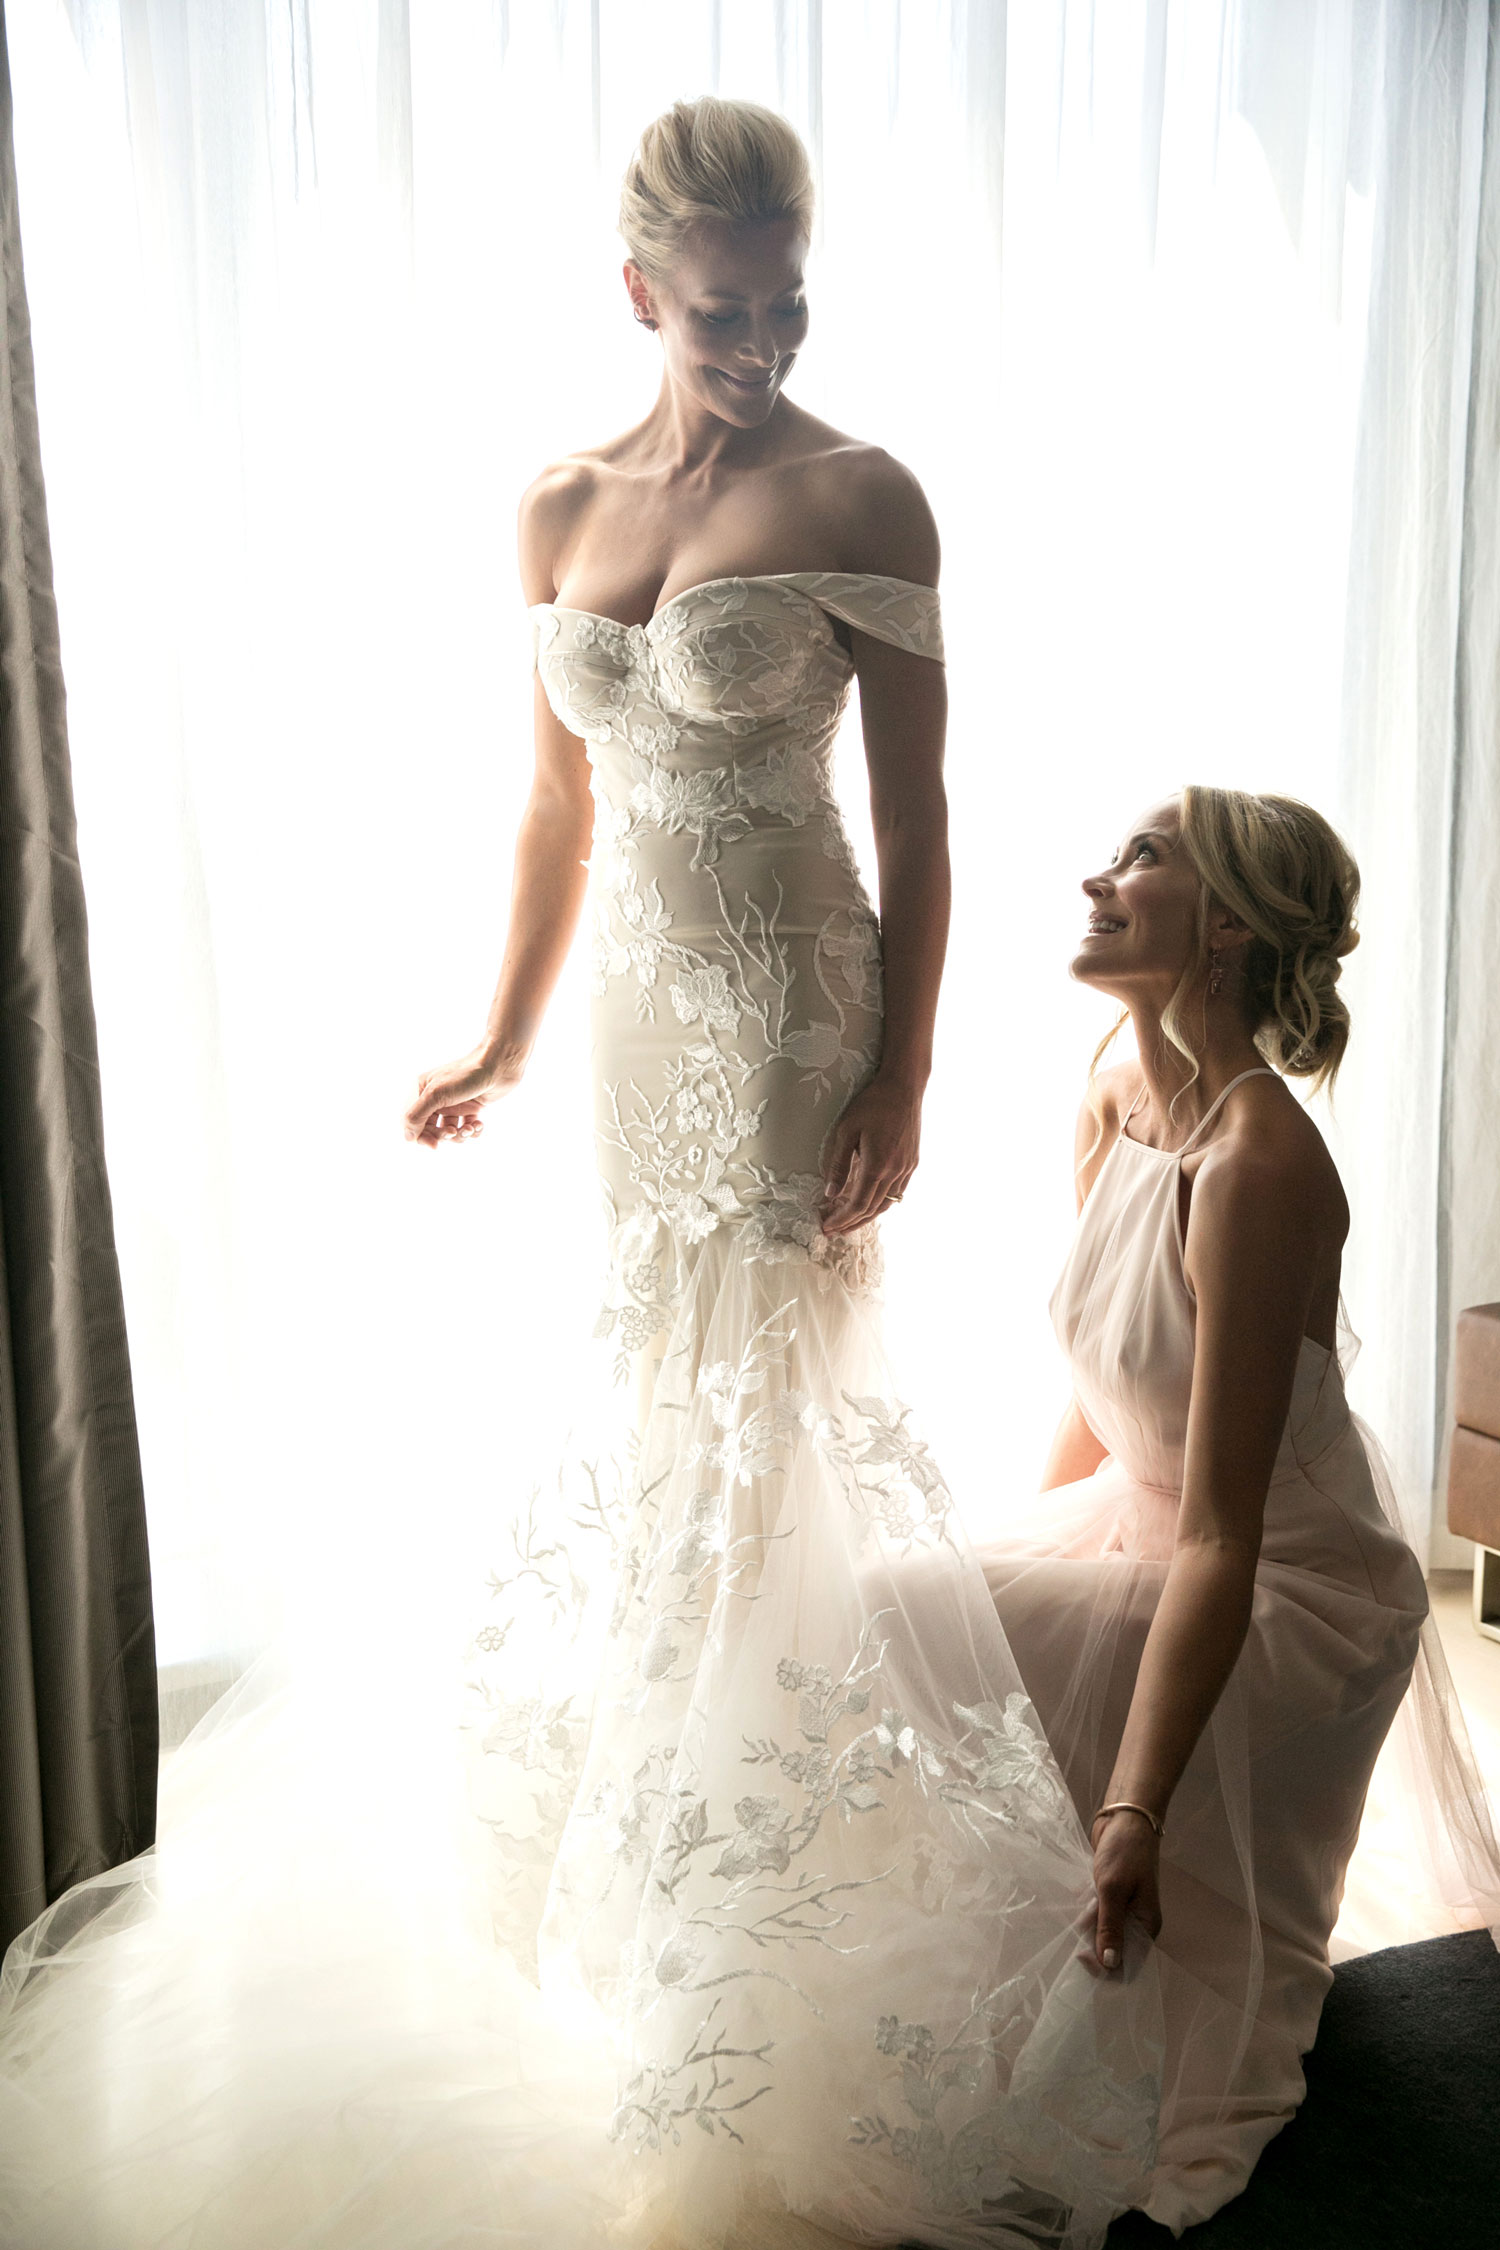 Actress brittany daniel and her twin sister cynthia on brittany wedding day maid of honor advice